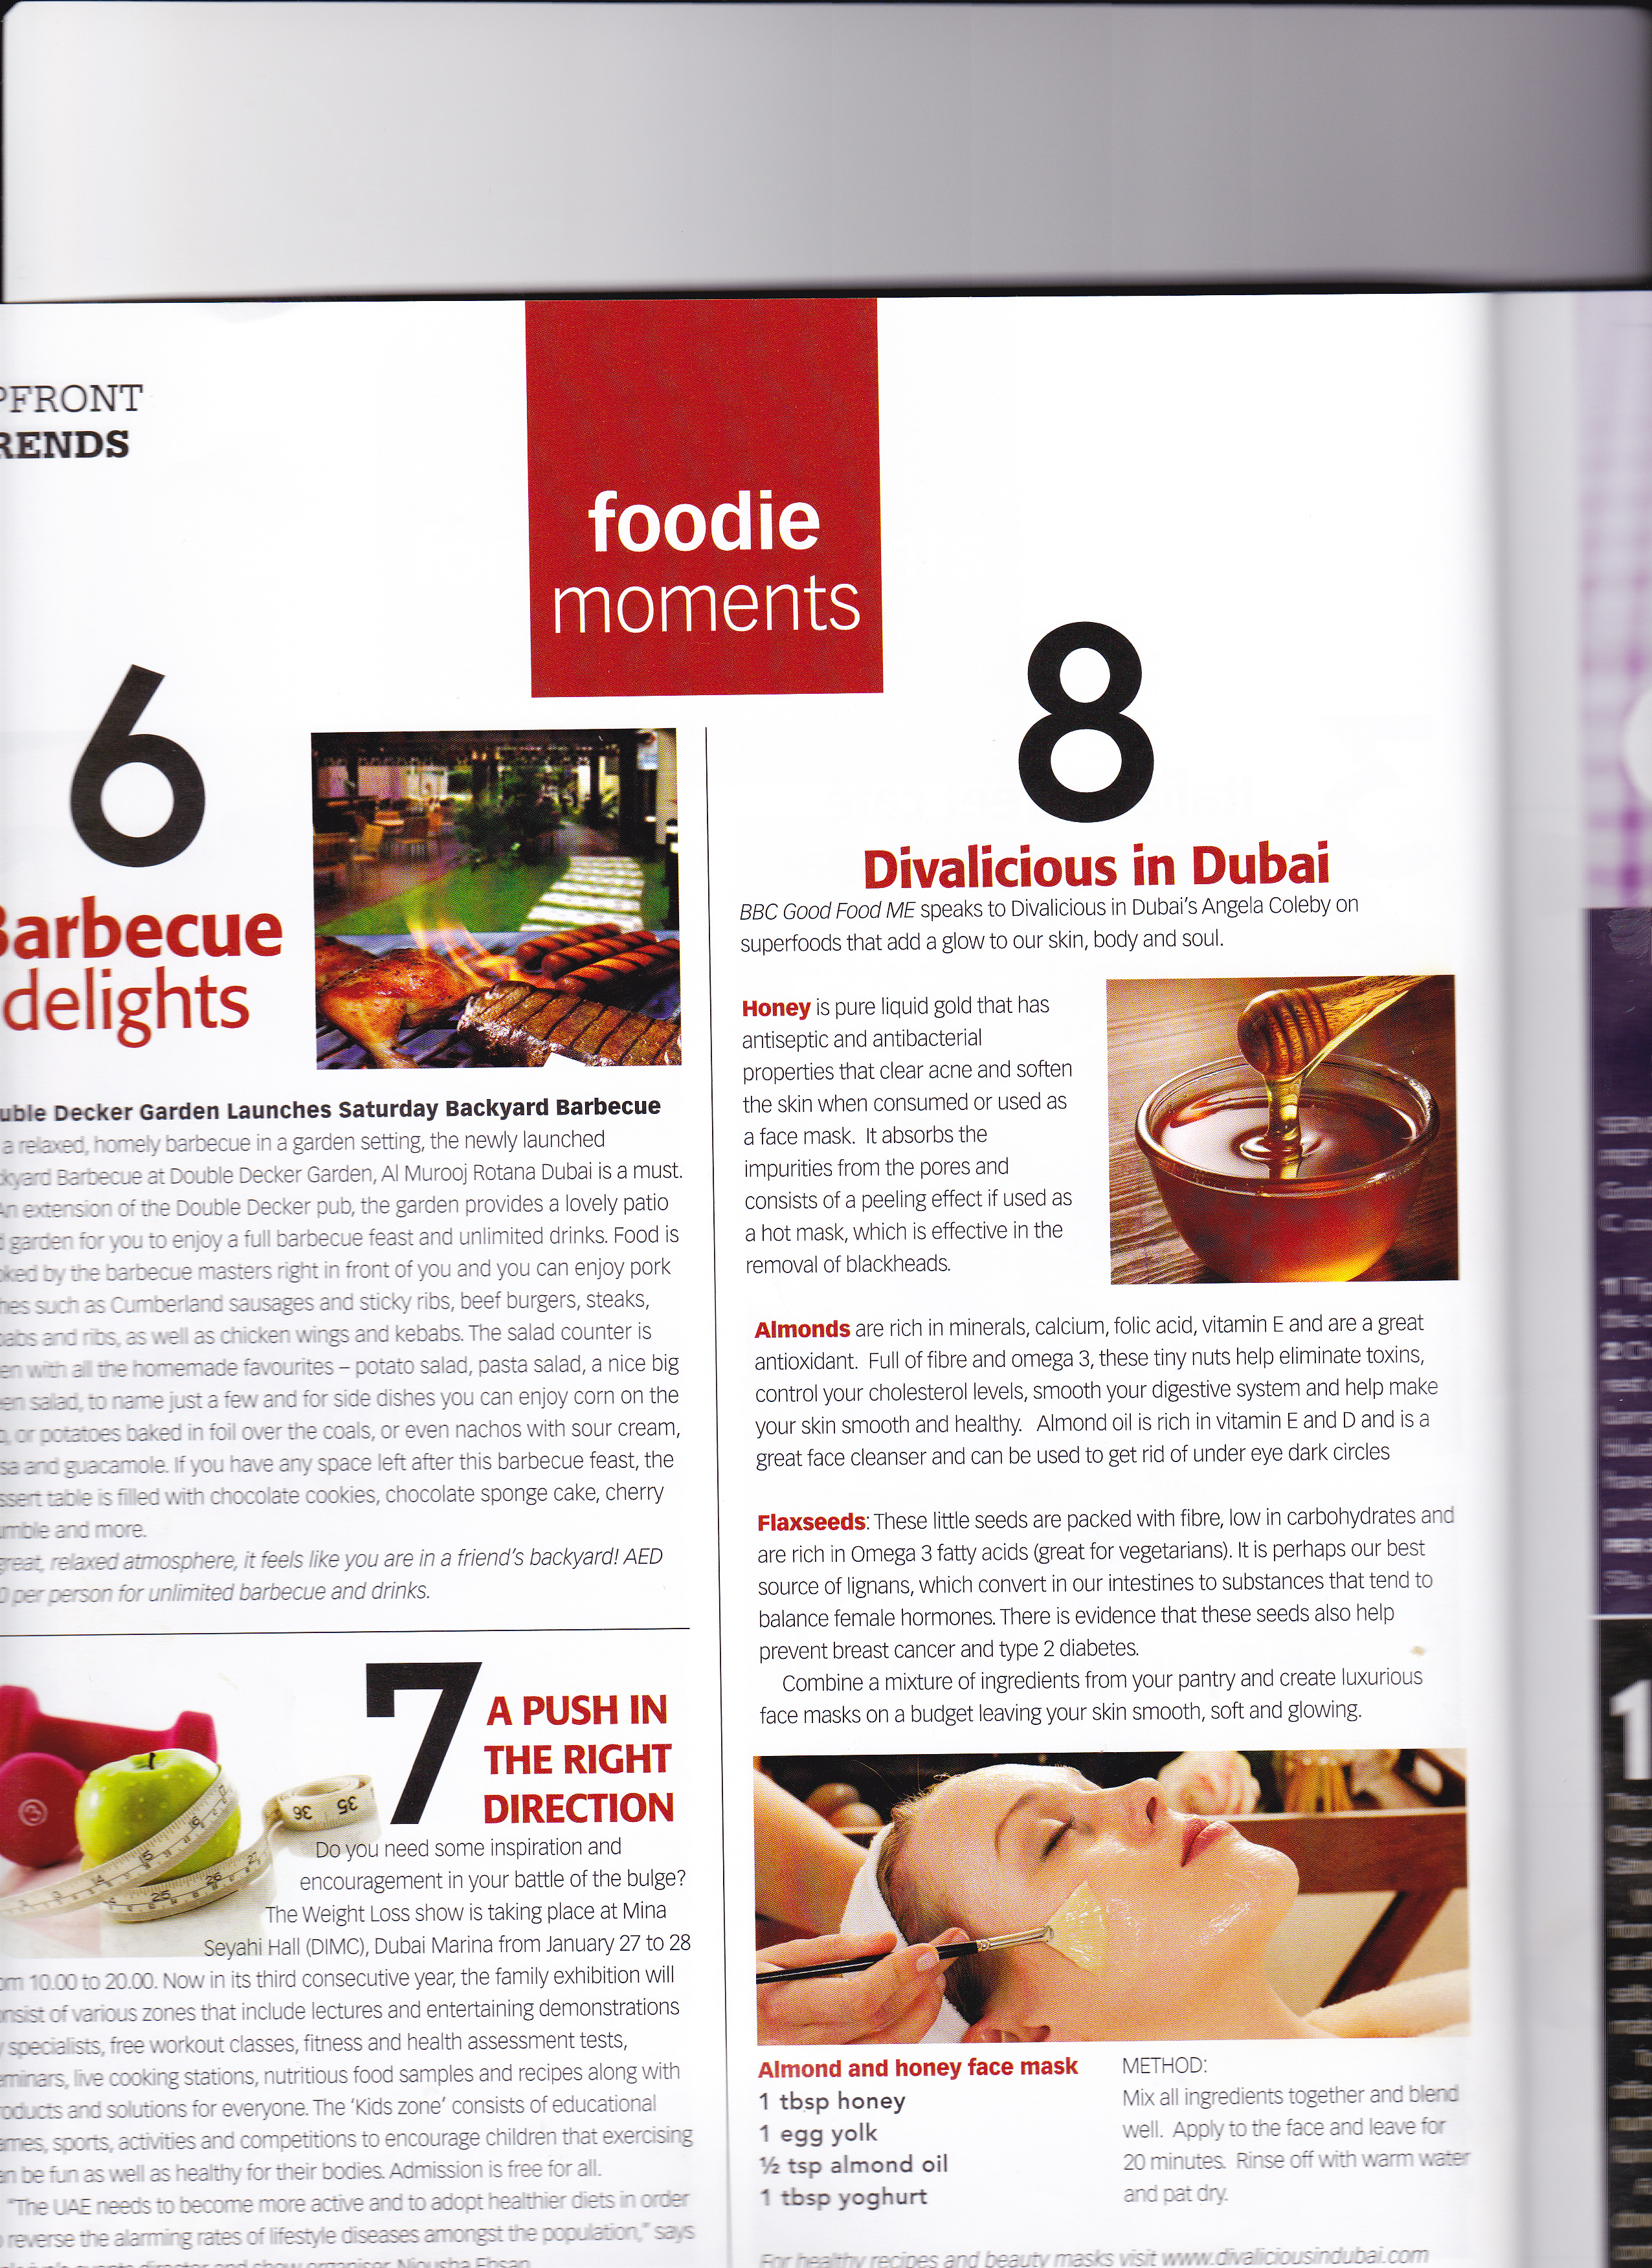 Bbc good food me jan 2012 divalicious recipes the diva in print forumfinder Image collections